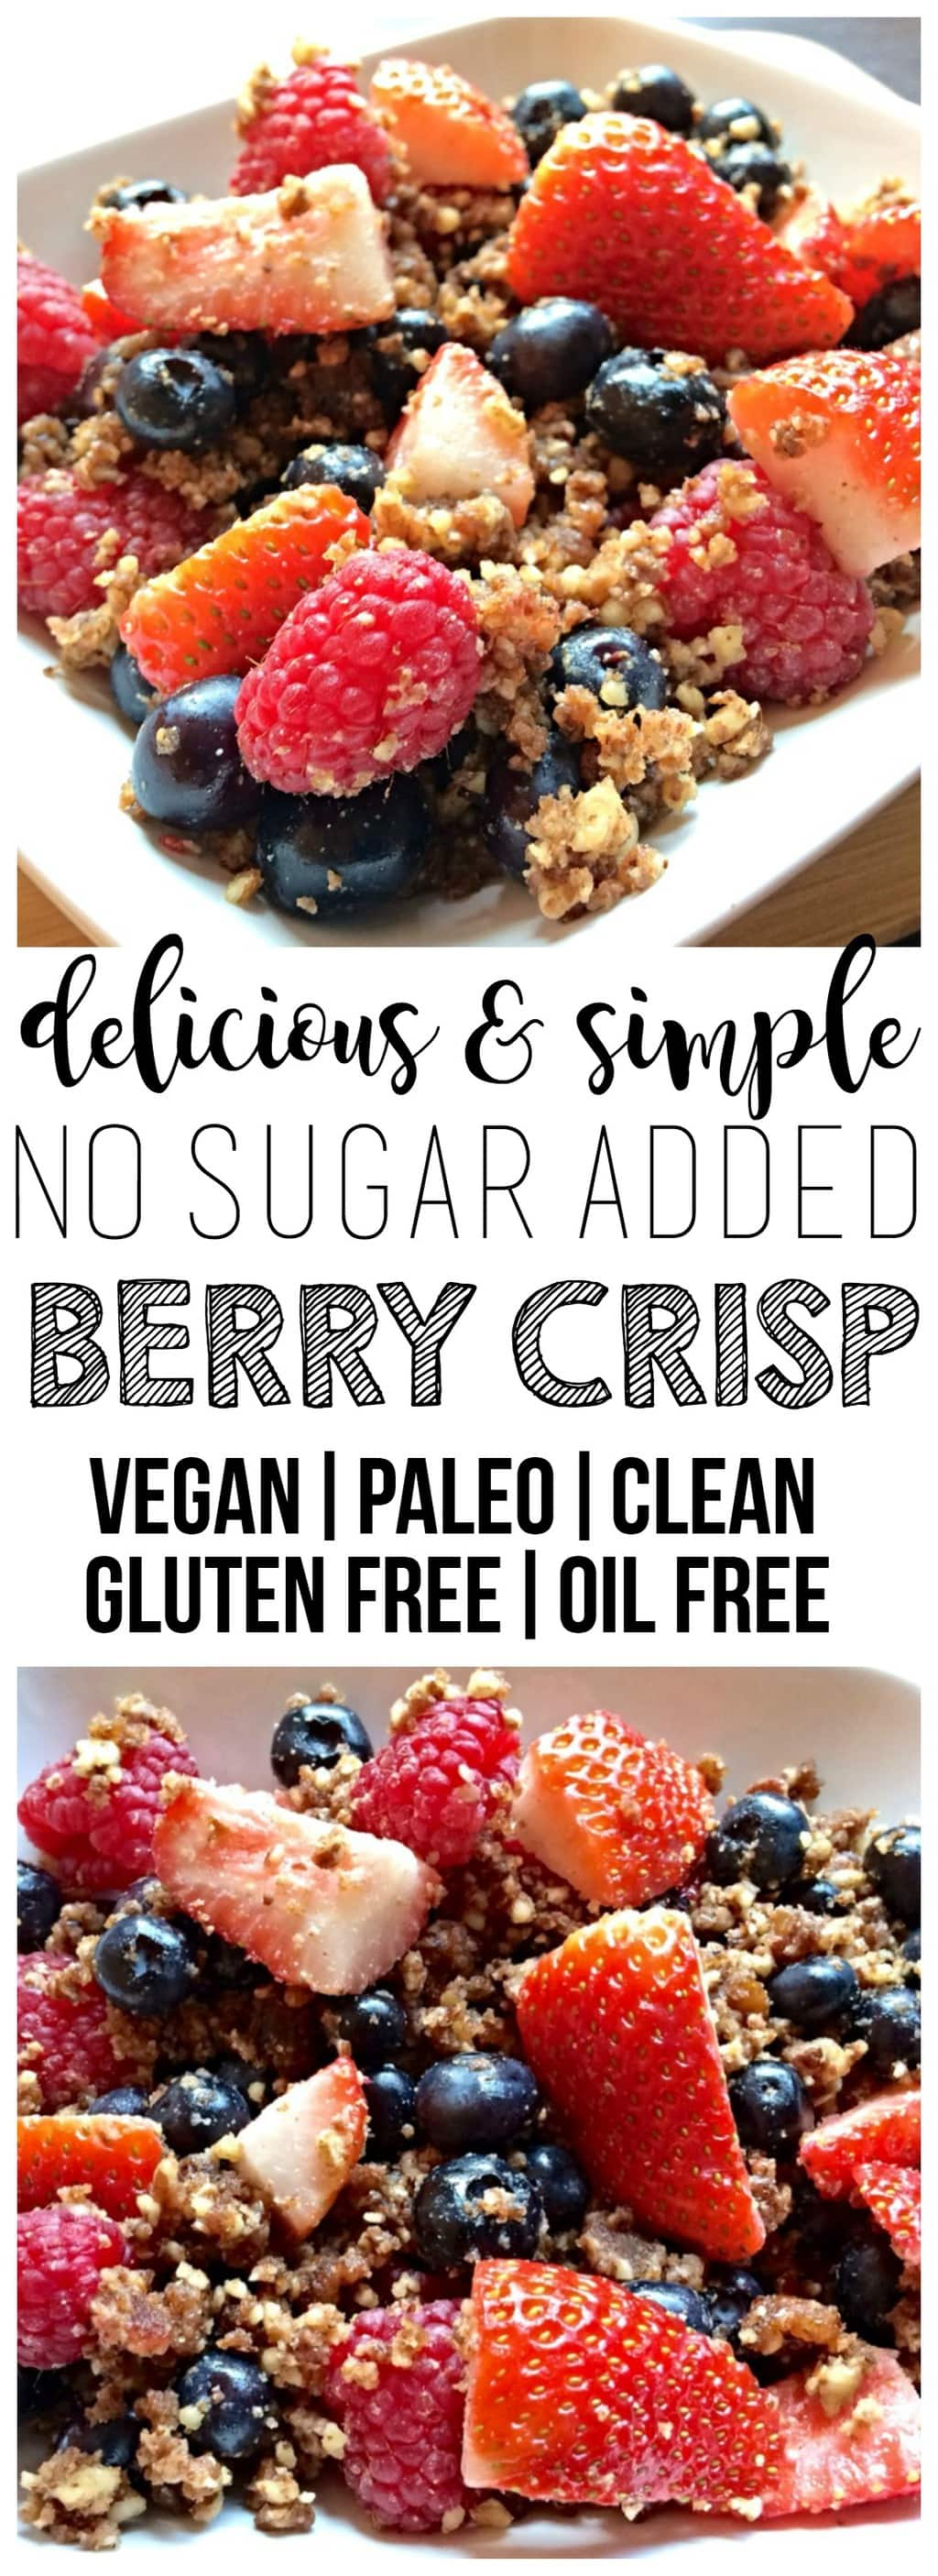 This simple and delicious Vegan Berry Crisp is the perfect breakfast, snack, or dessert! It is made with only 5 whole food ingredients and contains no added sugar. Vegan, paleo, oil-free & gluten-free!